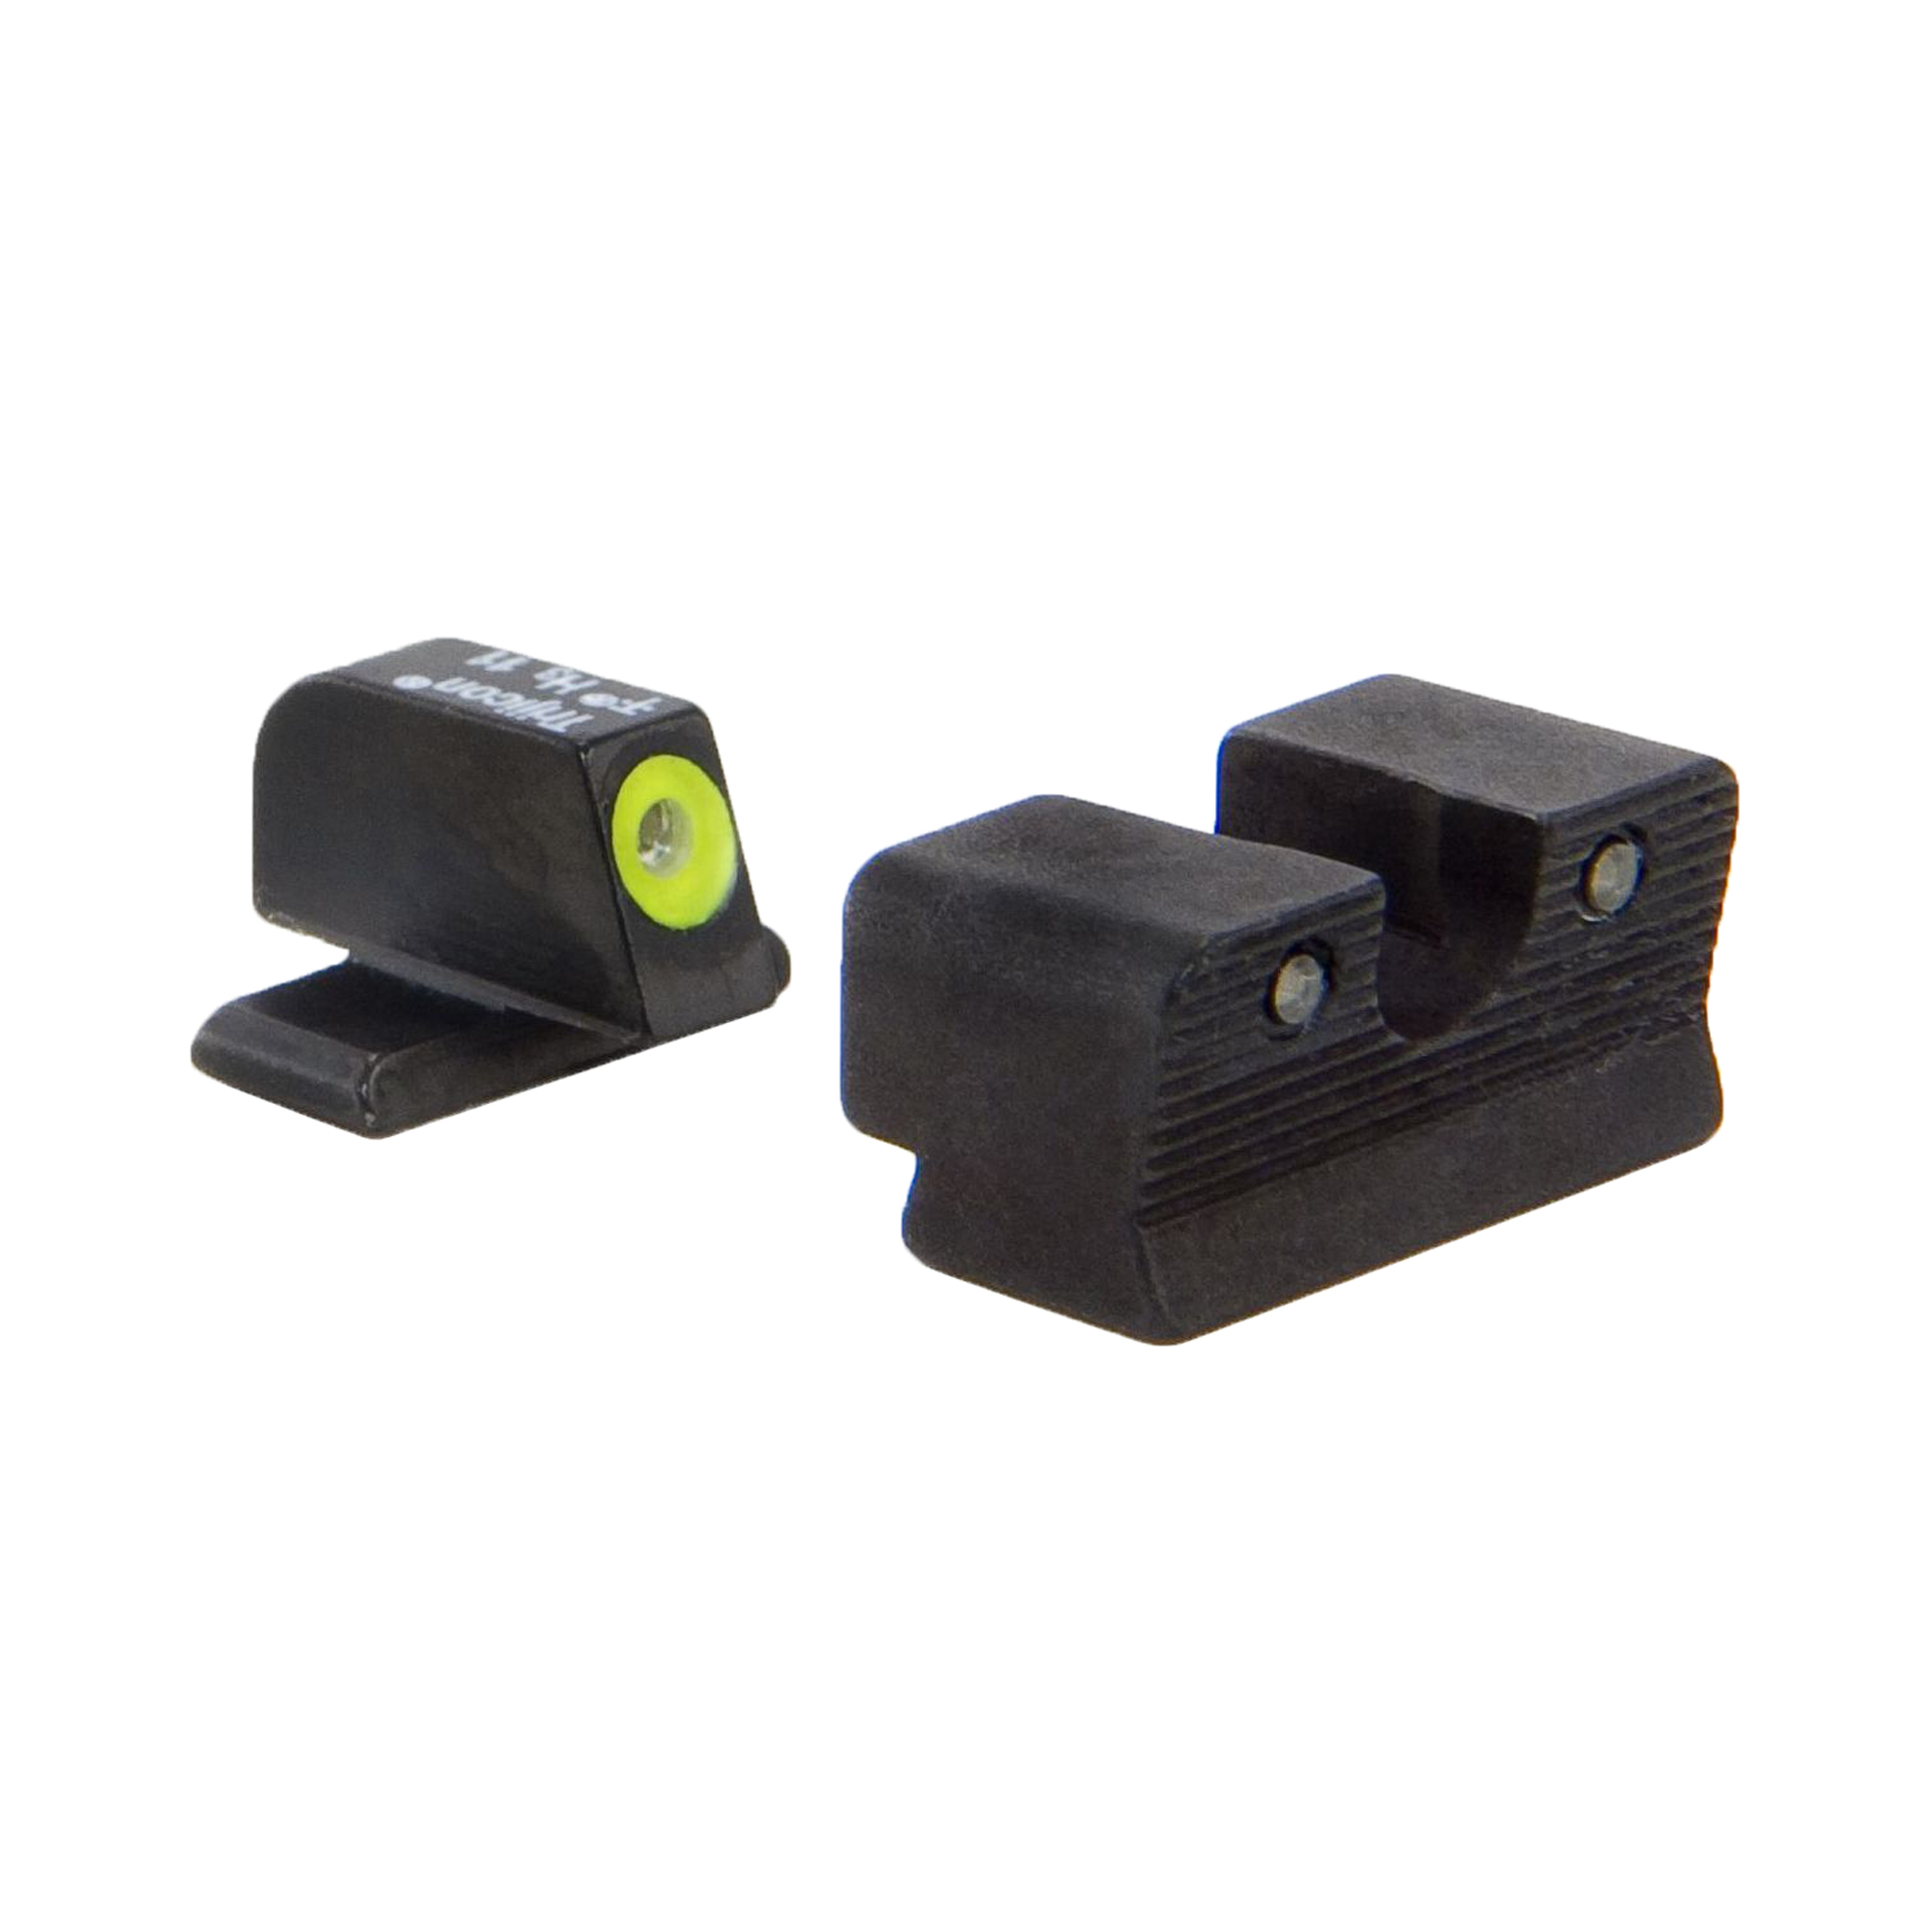 Click here to buy Trijicon Walther HD Night Sight Set PPS PPX PPS M2, Yellow Rear Lamp by Trijicon.